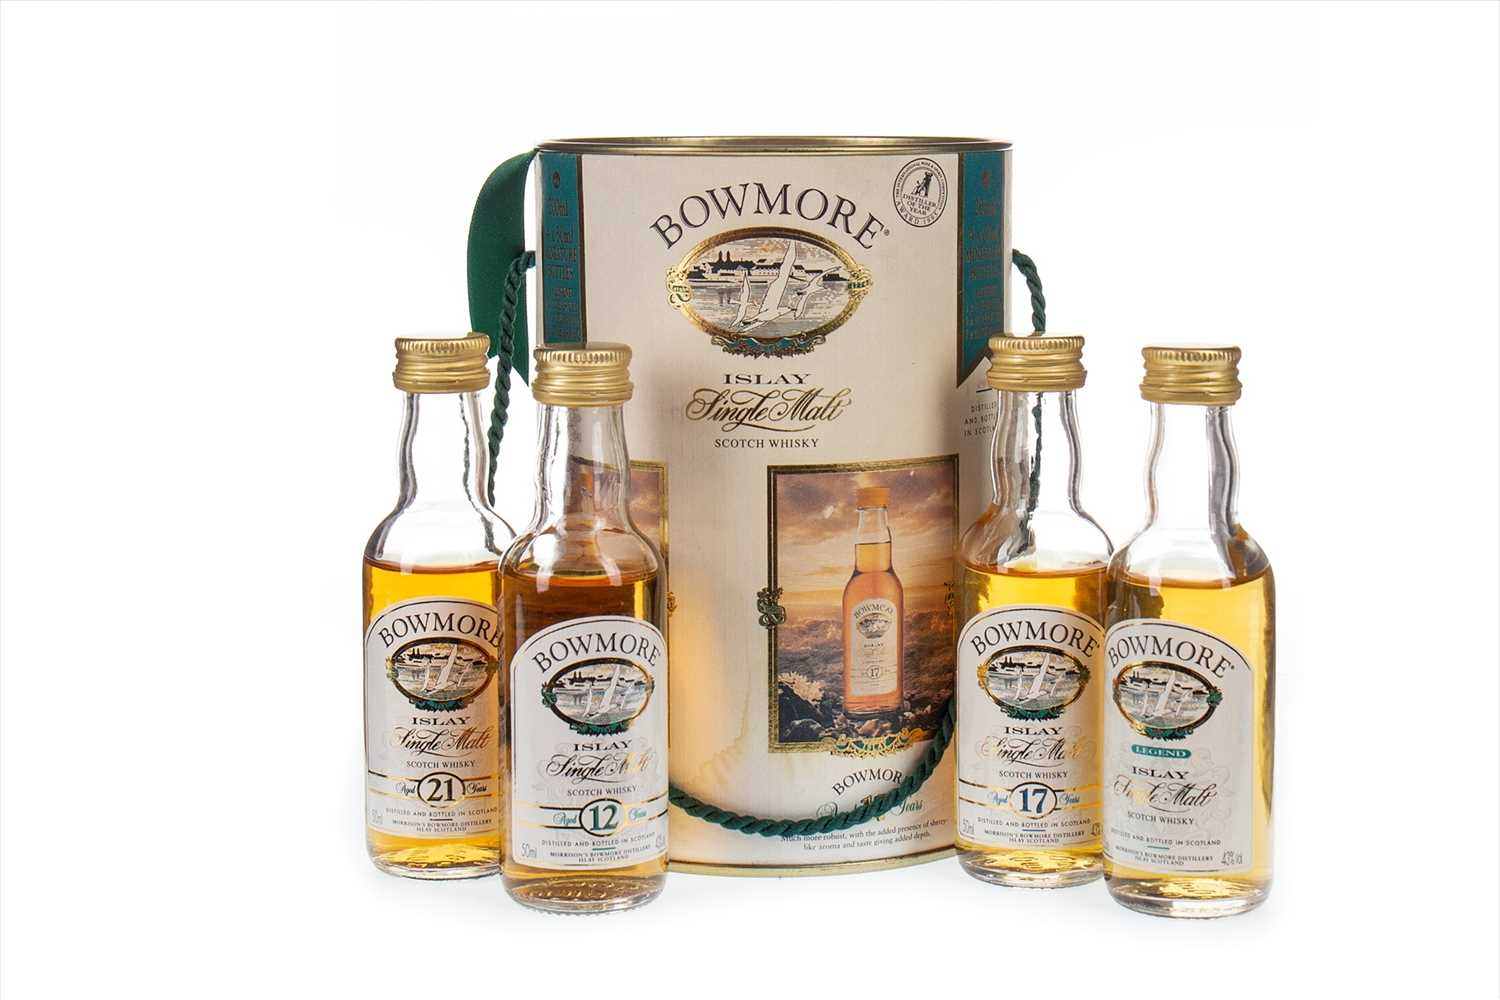 Lot 308-BOWMORE MINIATURE SET (4x5CL)